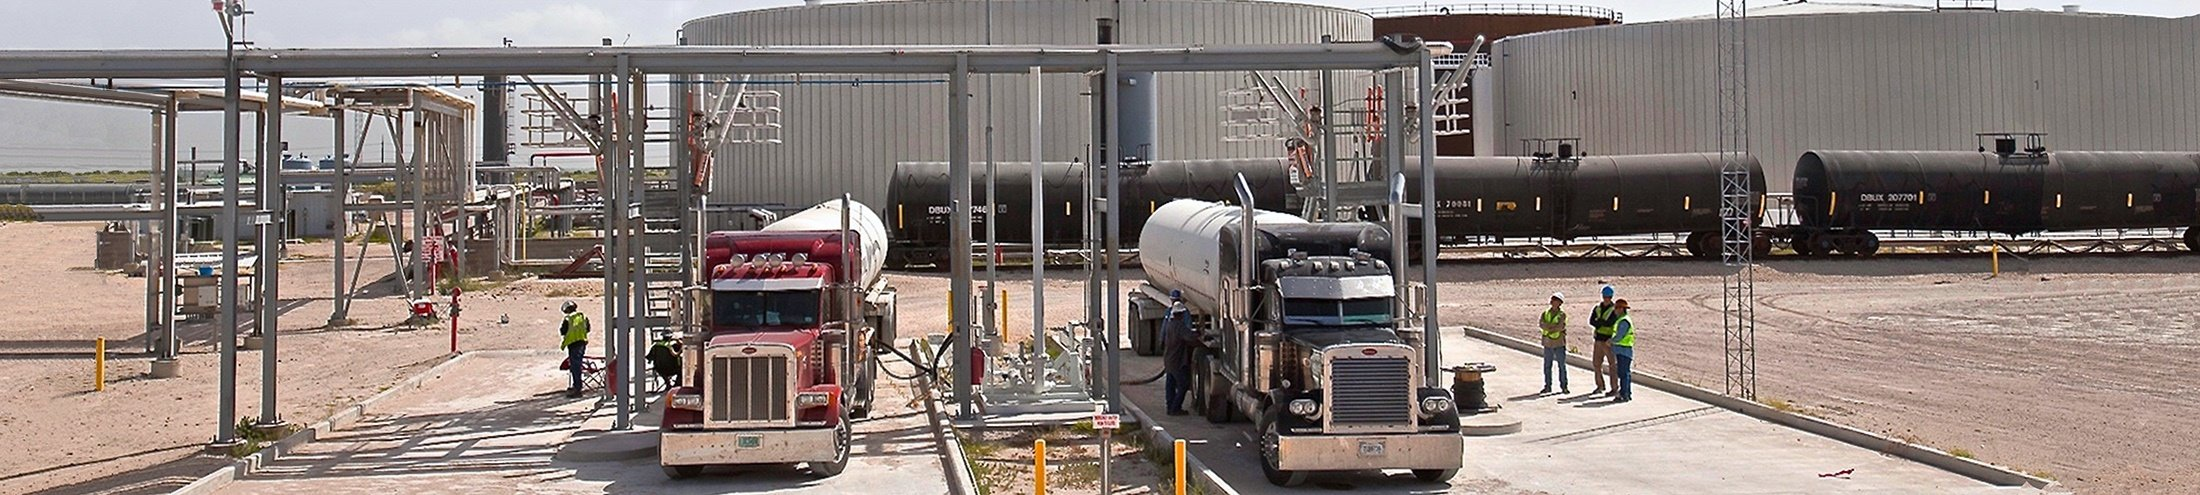 LPG Truck & Rail Terminal Engineering Construction Services .jpg